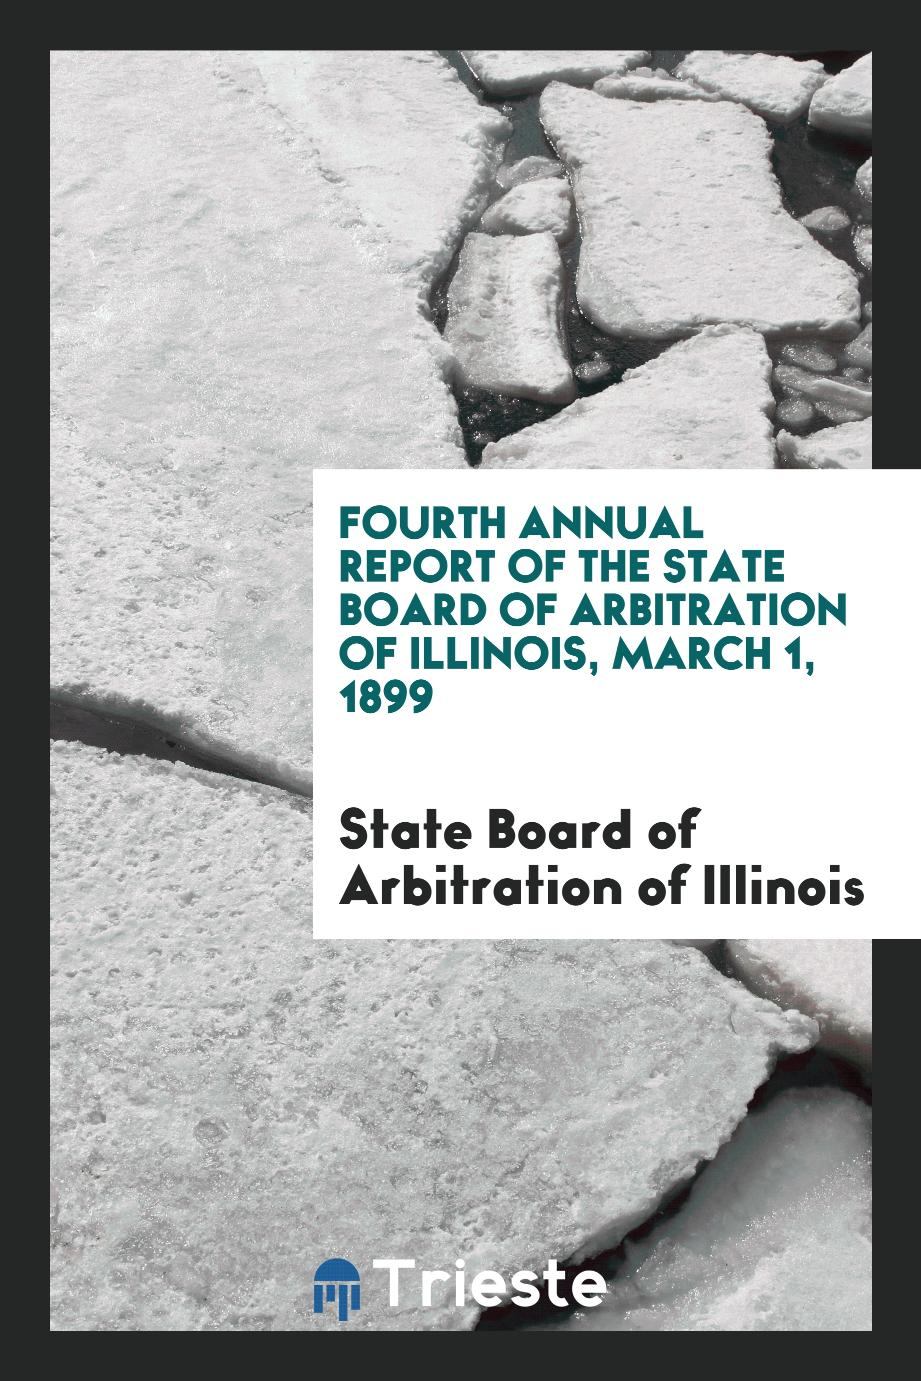 Fourth Annual Report of the State Board of Arbitration of Illinois, March 1, 1899